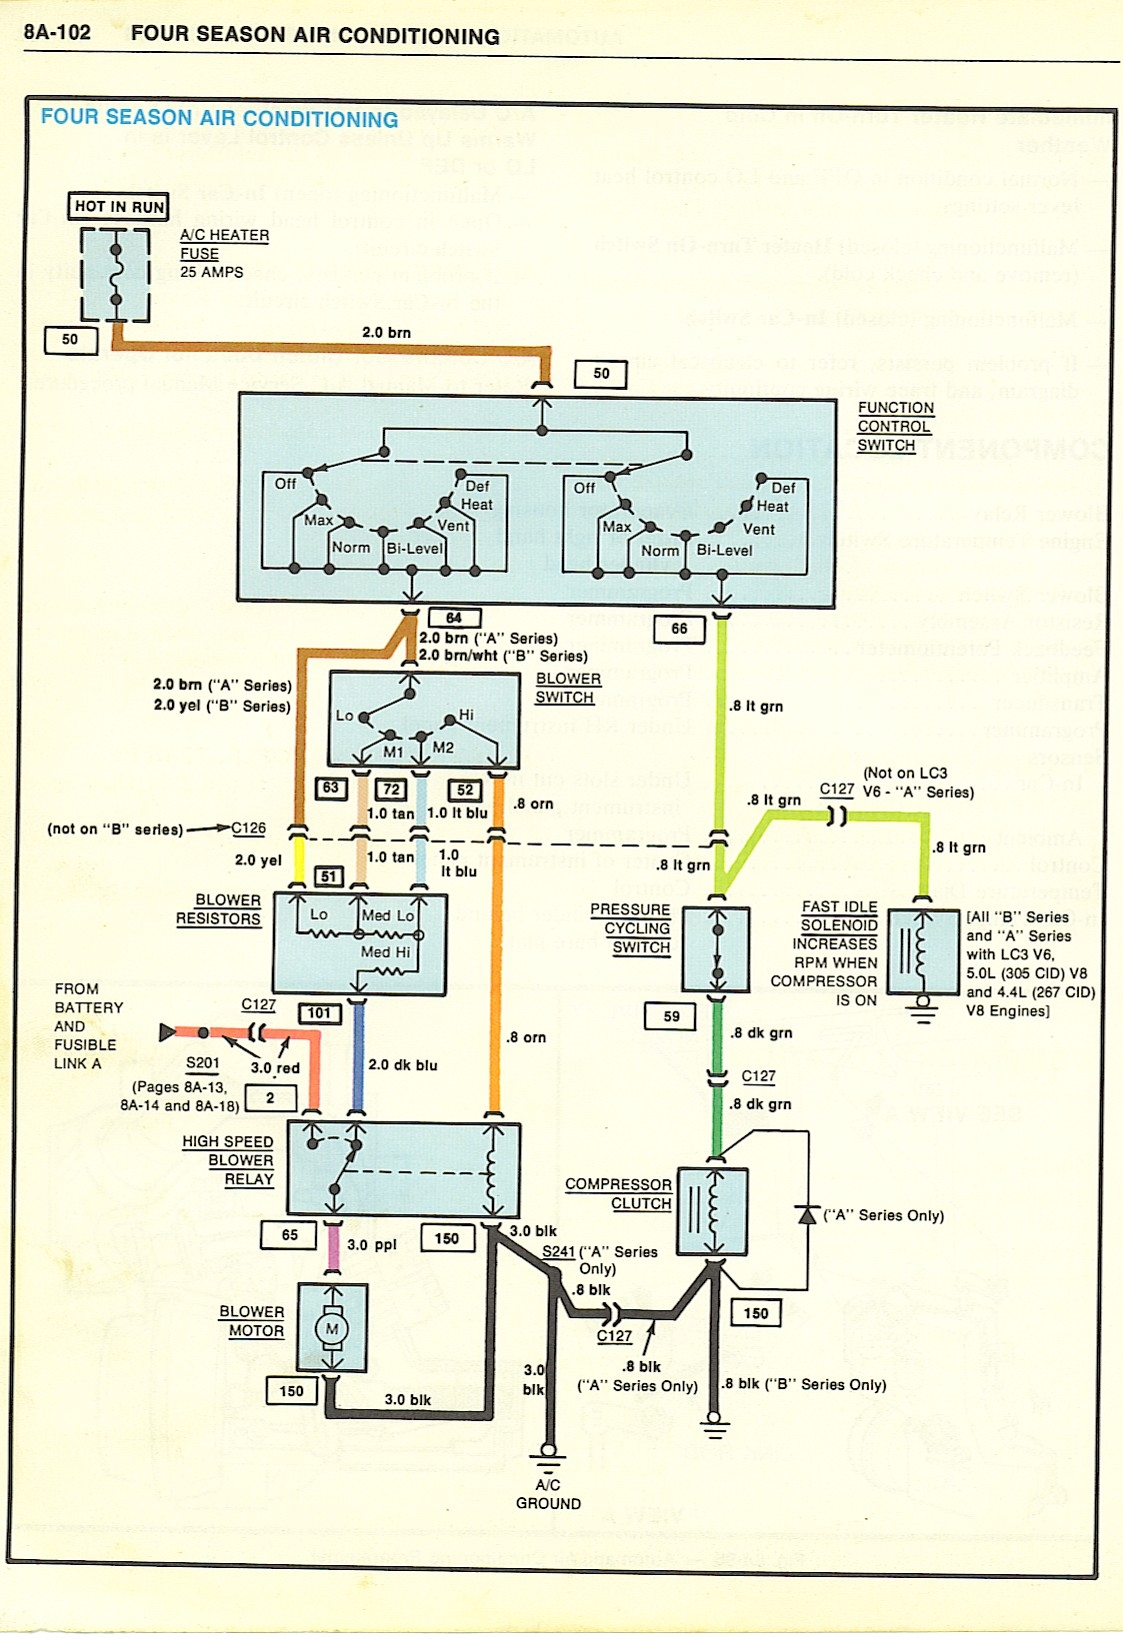 Kancil Power Window Wiring Diagram Archive Of Automotive Convert T12 To T8 Chevy Diagrams Rh Wizard Com